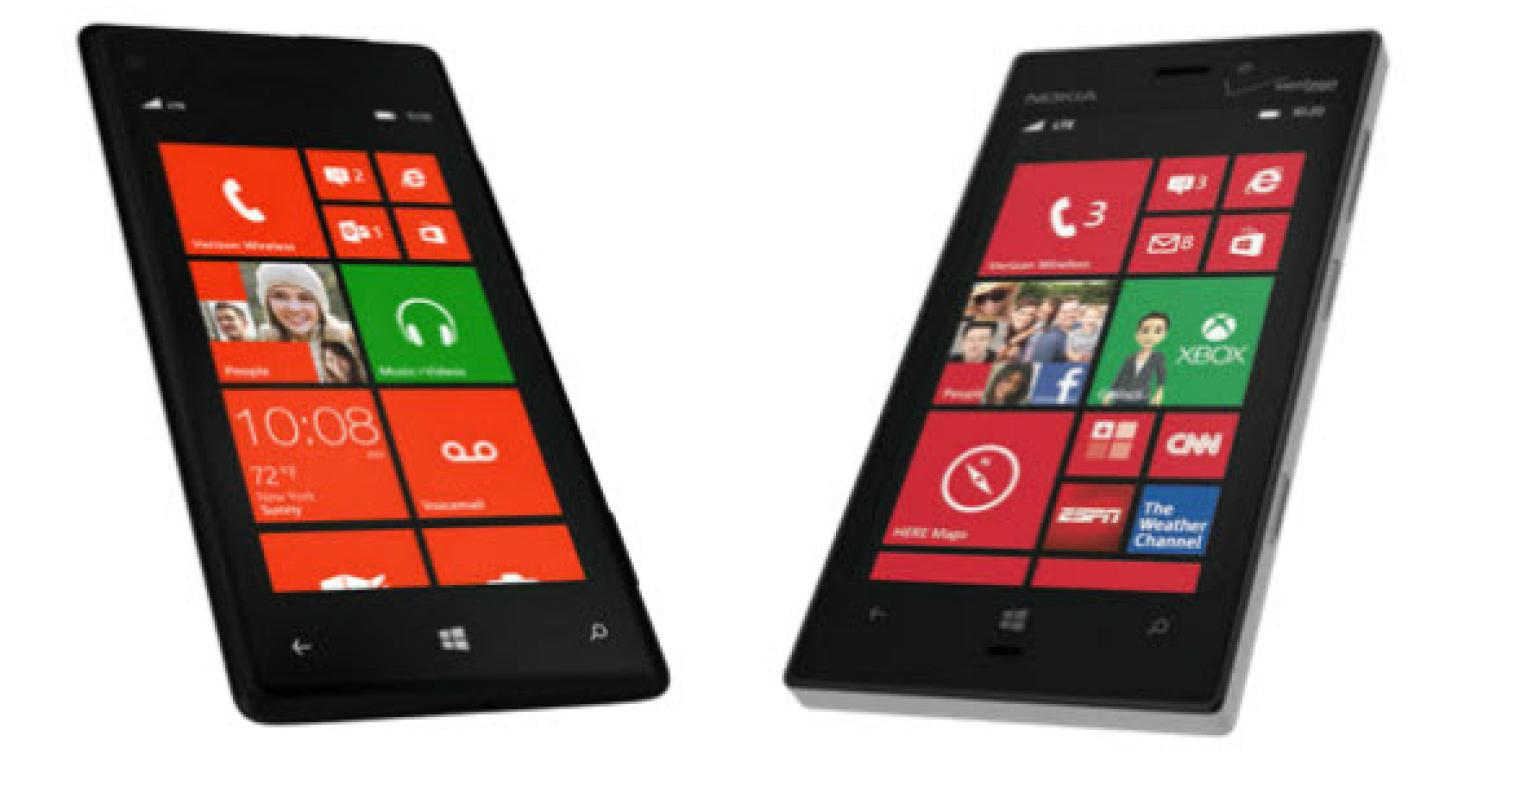 Move To Windows Phone With Free Htc And Nokia Phones From